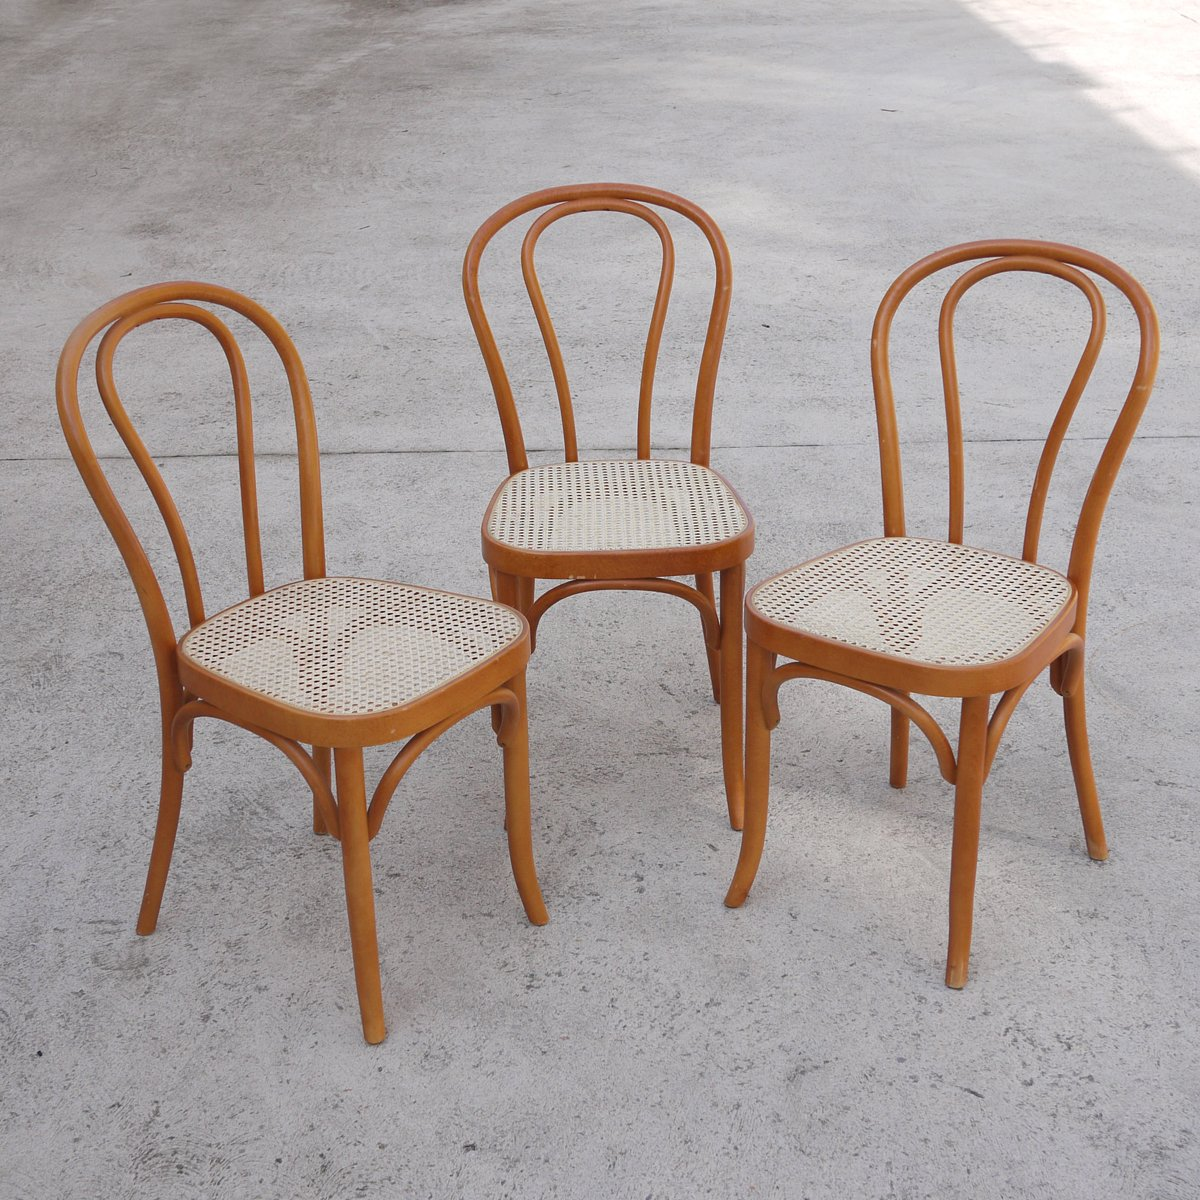 Vintage Rattan Chairs Vintage Bentwood Rattan Dining Chairs Set Of 3 For Sale